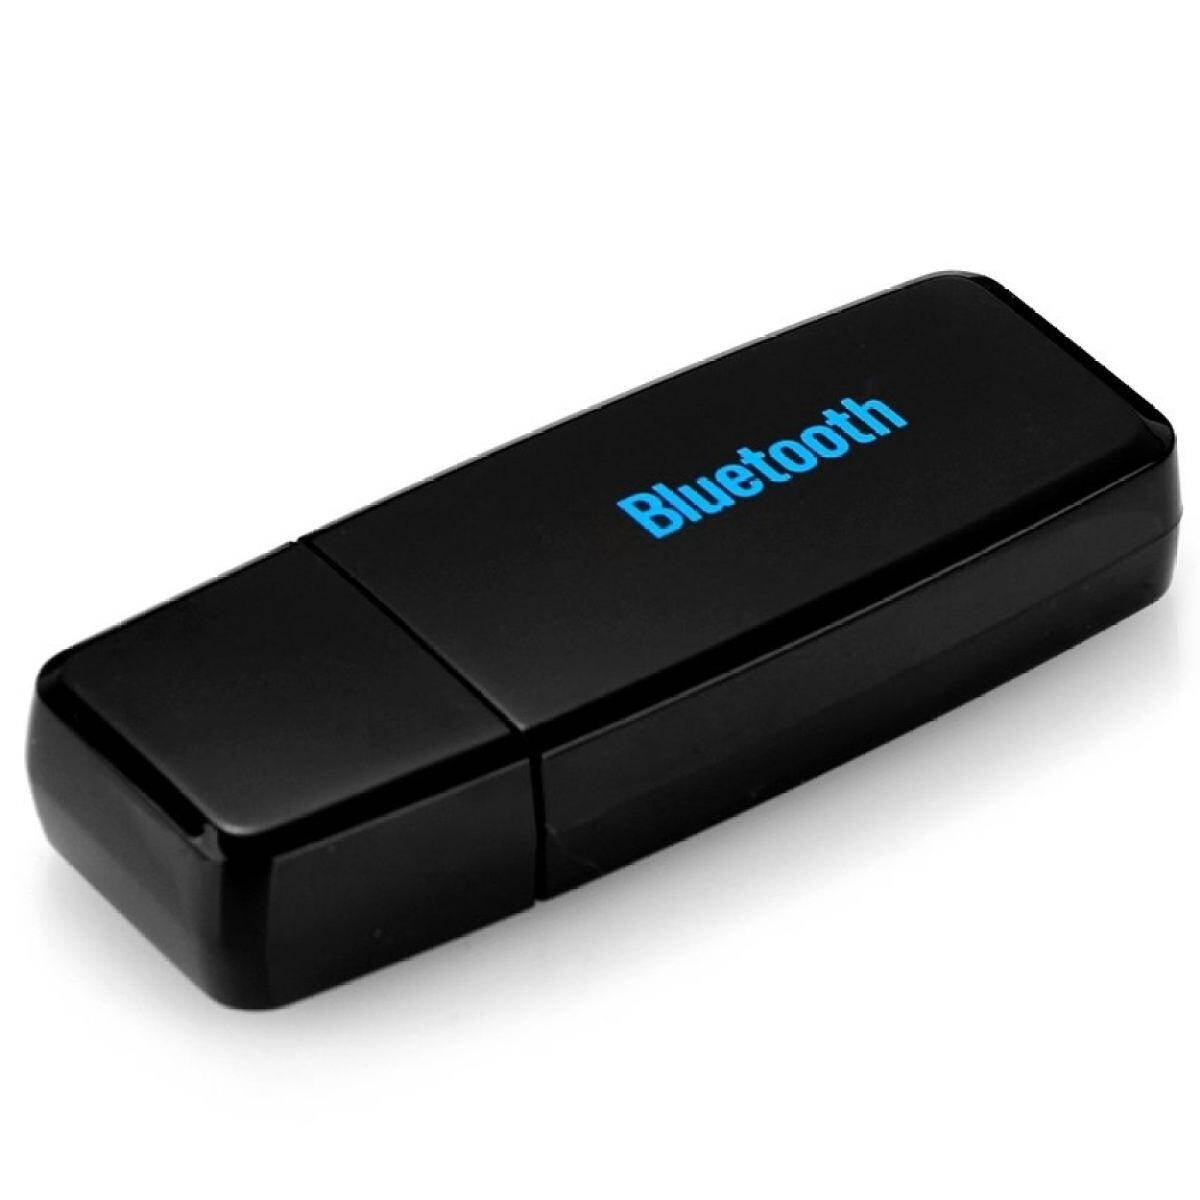 Bluetooth 2.0 A2DP USB Audio Music Receiver with 3.5mmInterface(Black)